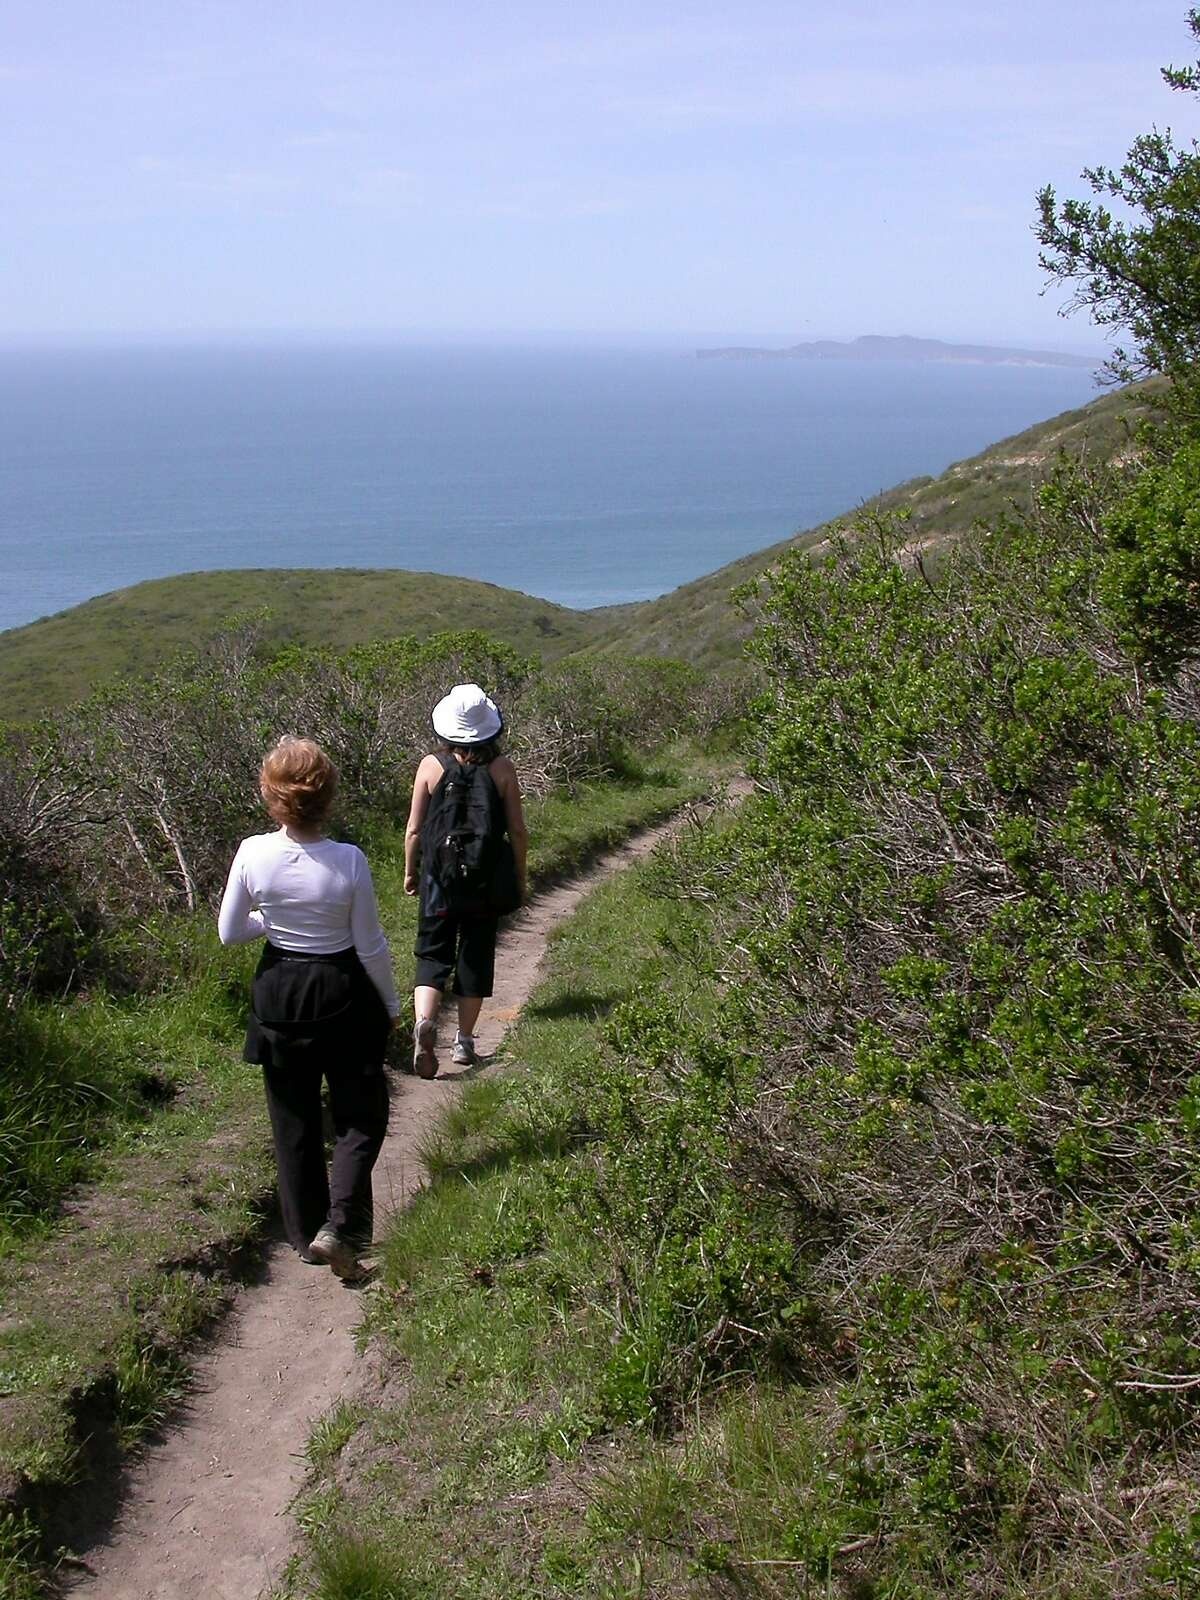 On the Sky Trail Loop, you emerge from forest for views of Drakes Bay, Chimney Rock Headlands and Limantour.